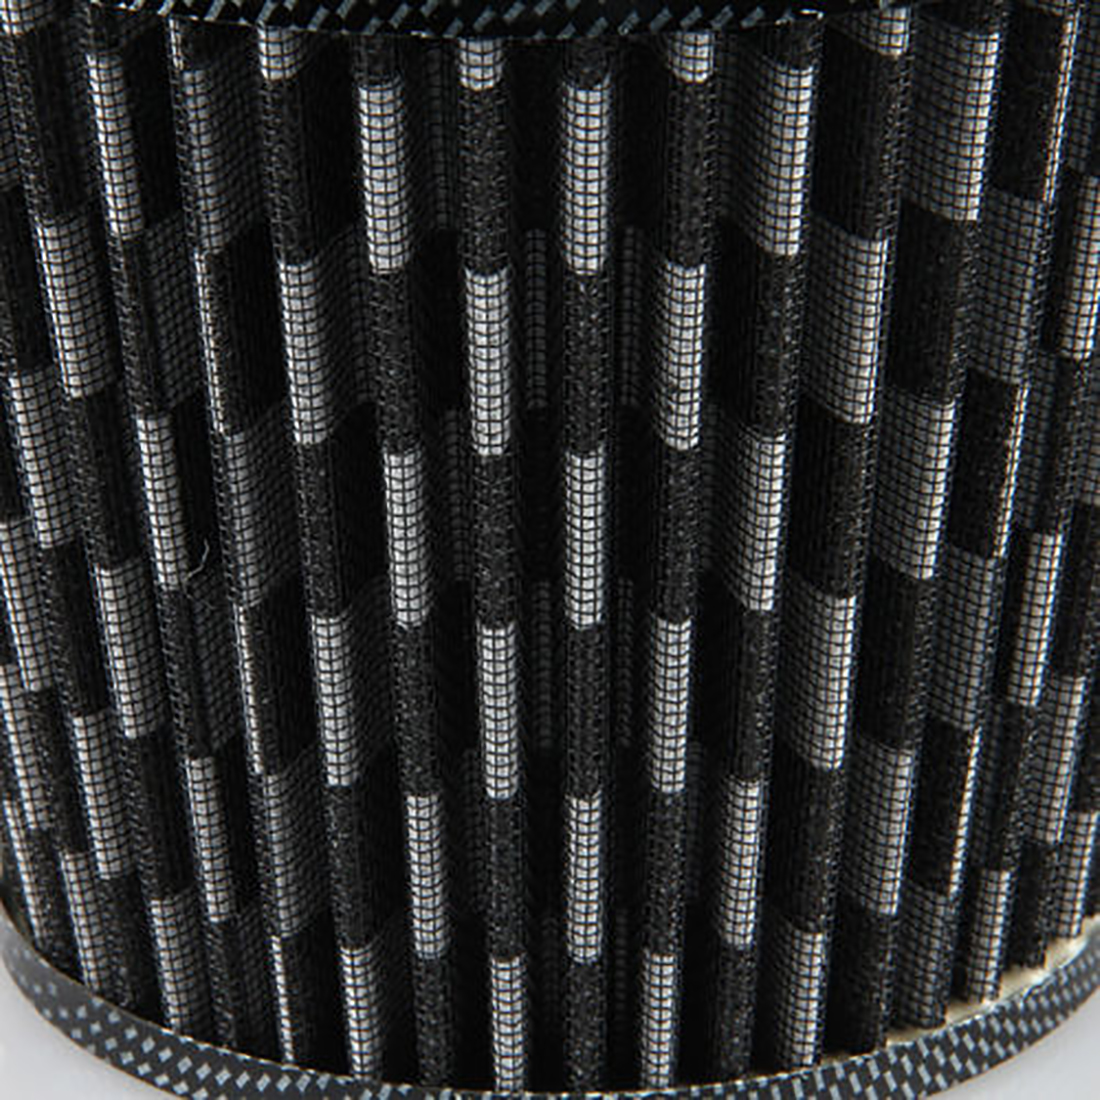 "Unique Bargains Vehicle Car Black White 76mm 3"" Inlet Dia Air Intake Round Filter - image 1 of 7"